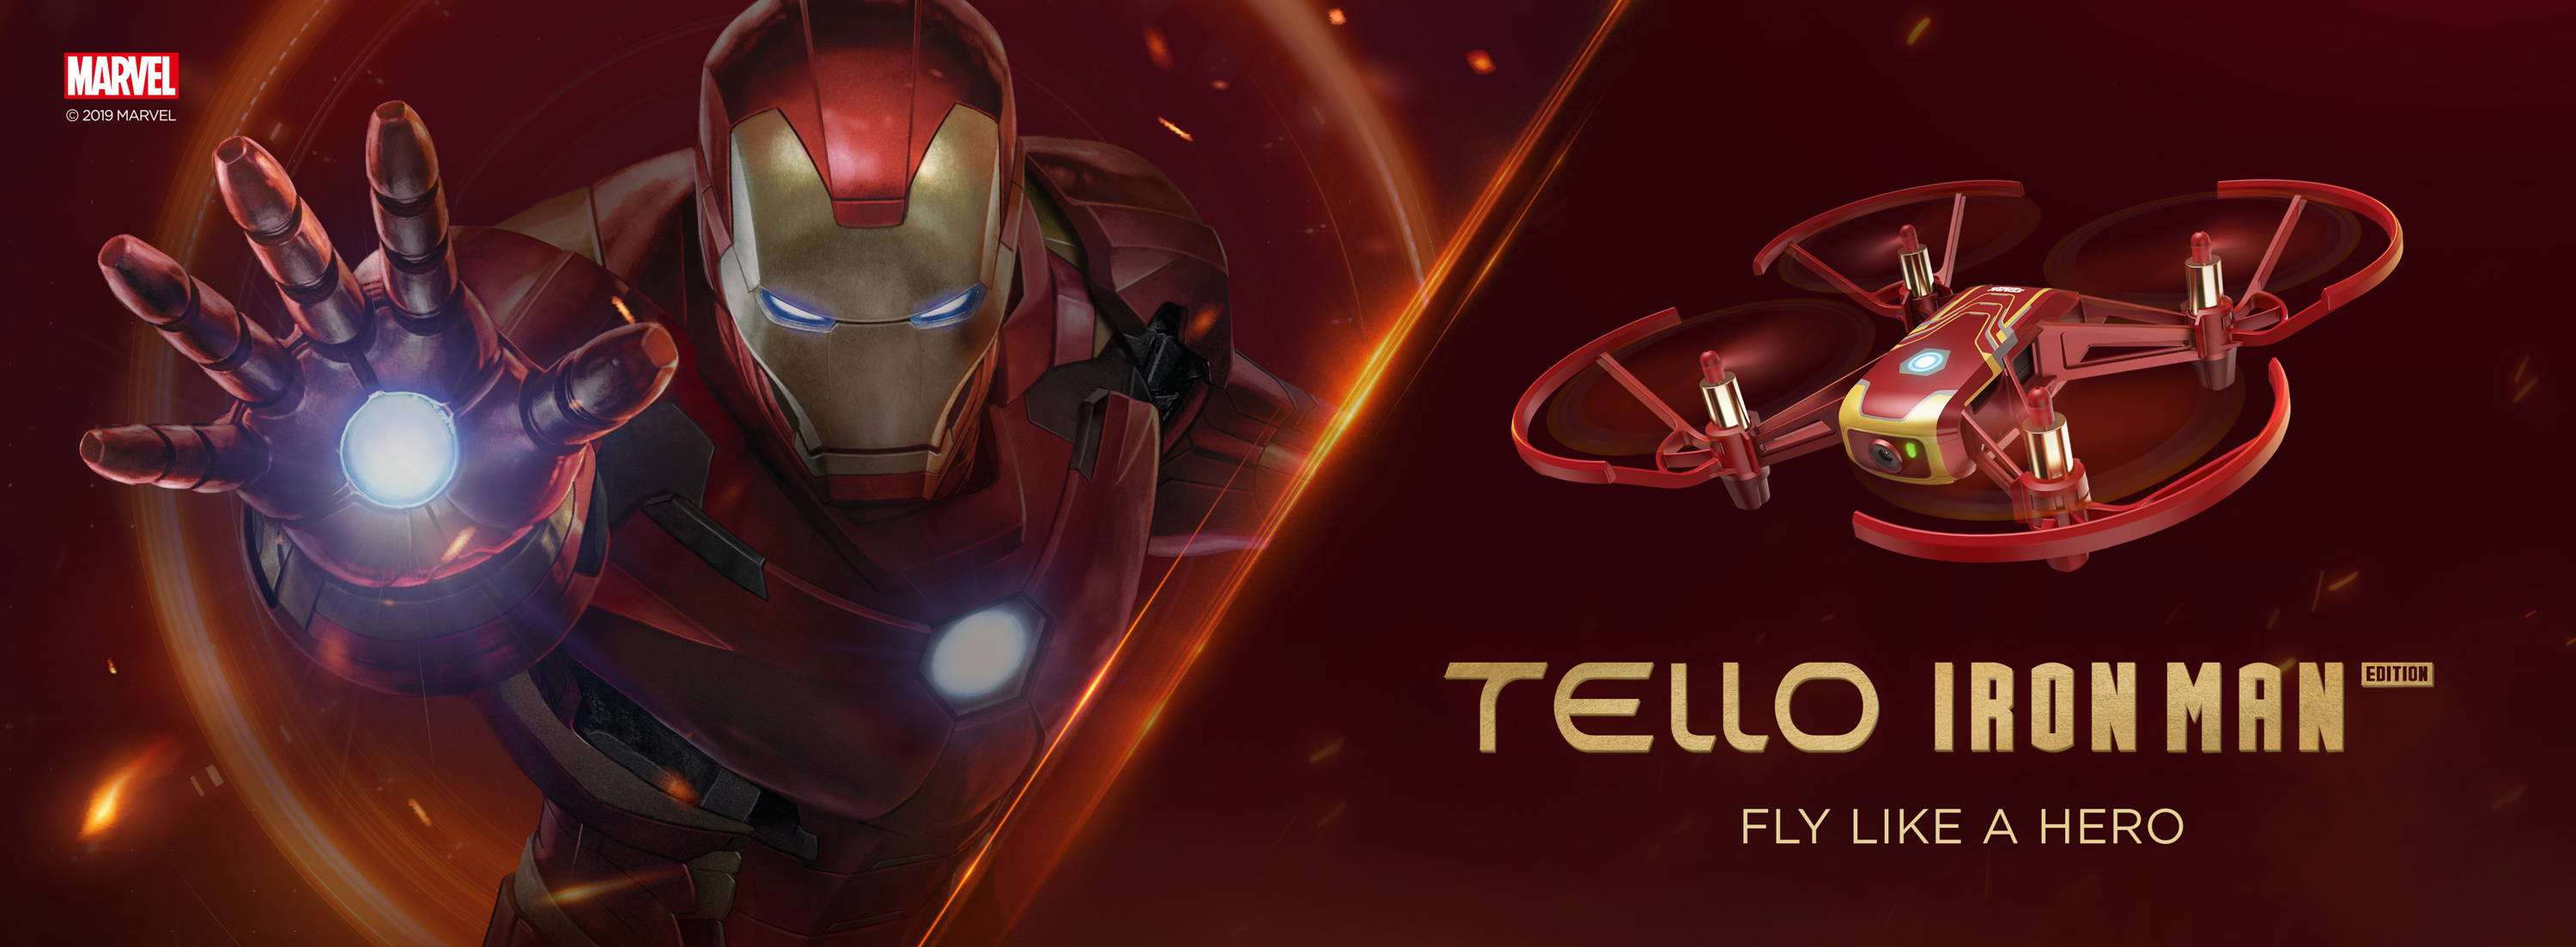 Tello Iron Man Edition Dr Drone